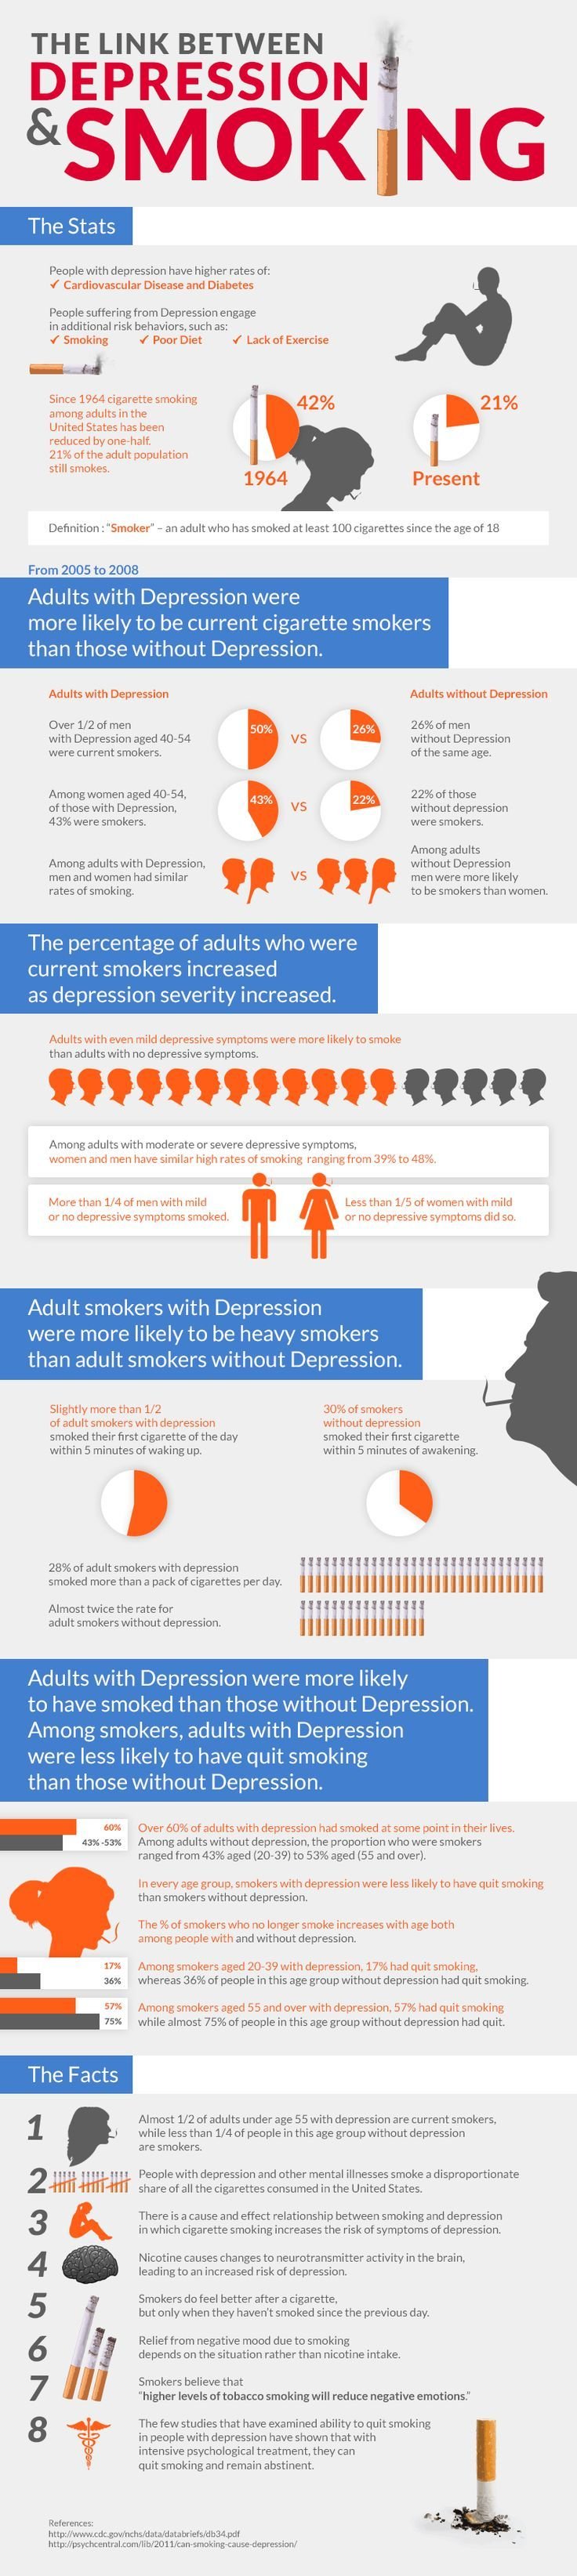 The link between Depression and smoking.